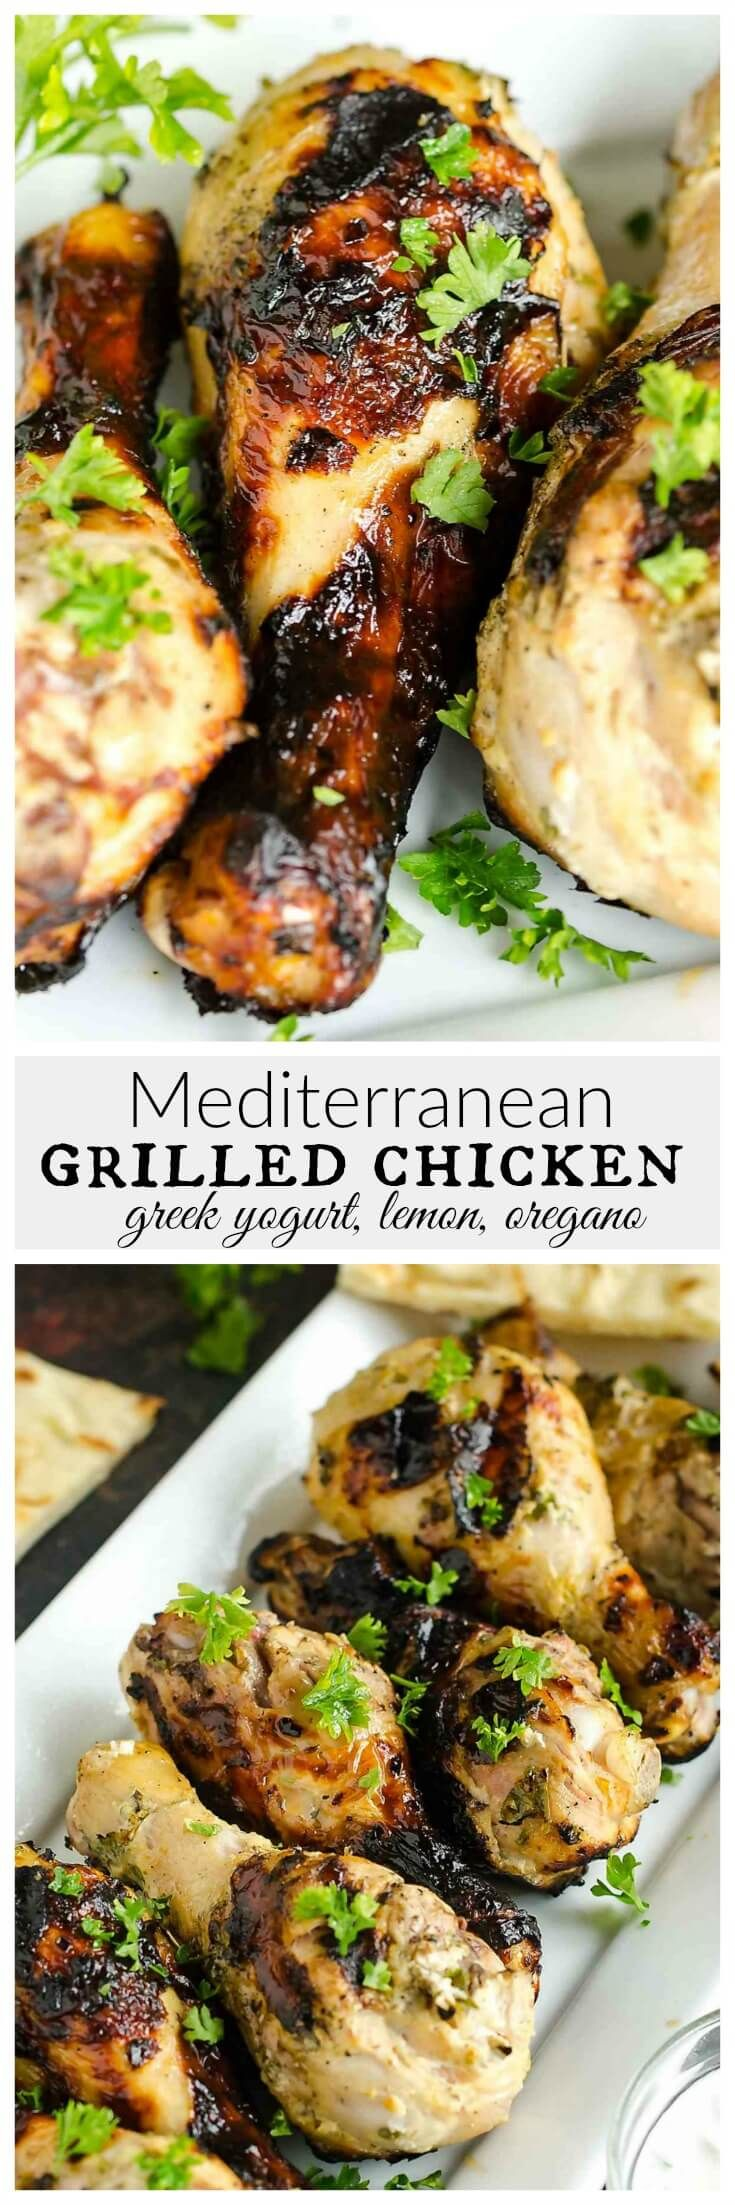 Mediterranean chicken recipes are so fresh and delicious tasting! This one is marinated in Greek yogurt, lemon, garlic and oregano. Grilled to perfection for a delicious summer dinner. Print Greek Yogurt Grilled Chicken Chicken drumsticks  marinated in Greek yogurt, lemon, garlic and oregano. Grilled to perfection for a delicious summer dinner. Course Main Course Cuisine …